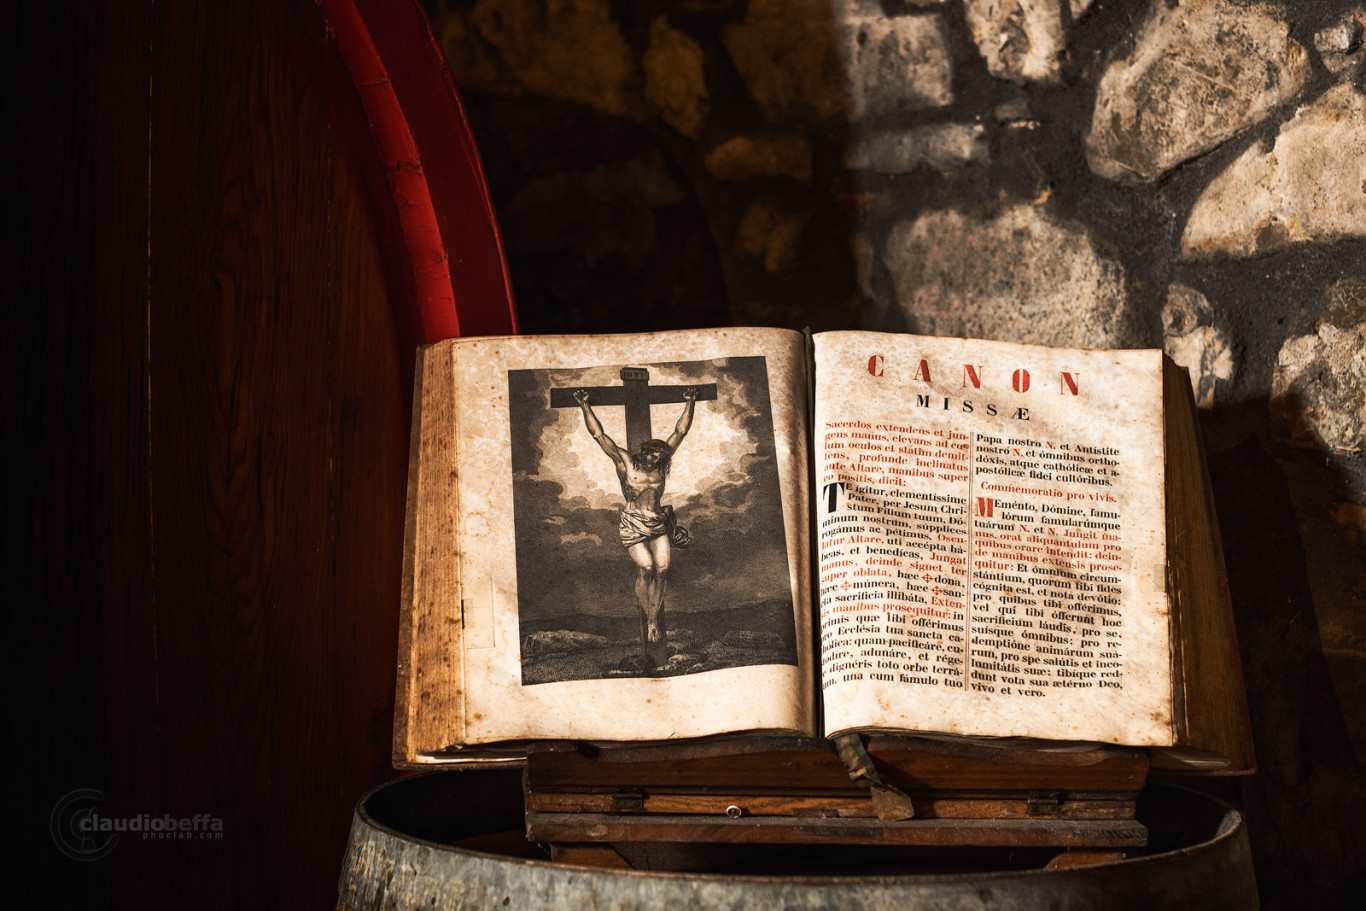 Cellar, Canon Missae, Missal, Book, Christ, Cask, Ancient, Wine, Wine-making, Costanti, Light, Wood, Bricks, Tuscany, Toscana, Val d'Orcia, Montalcino, Italy, Italia, Ancient wine cellars of Tuscany